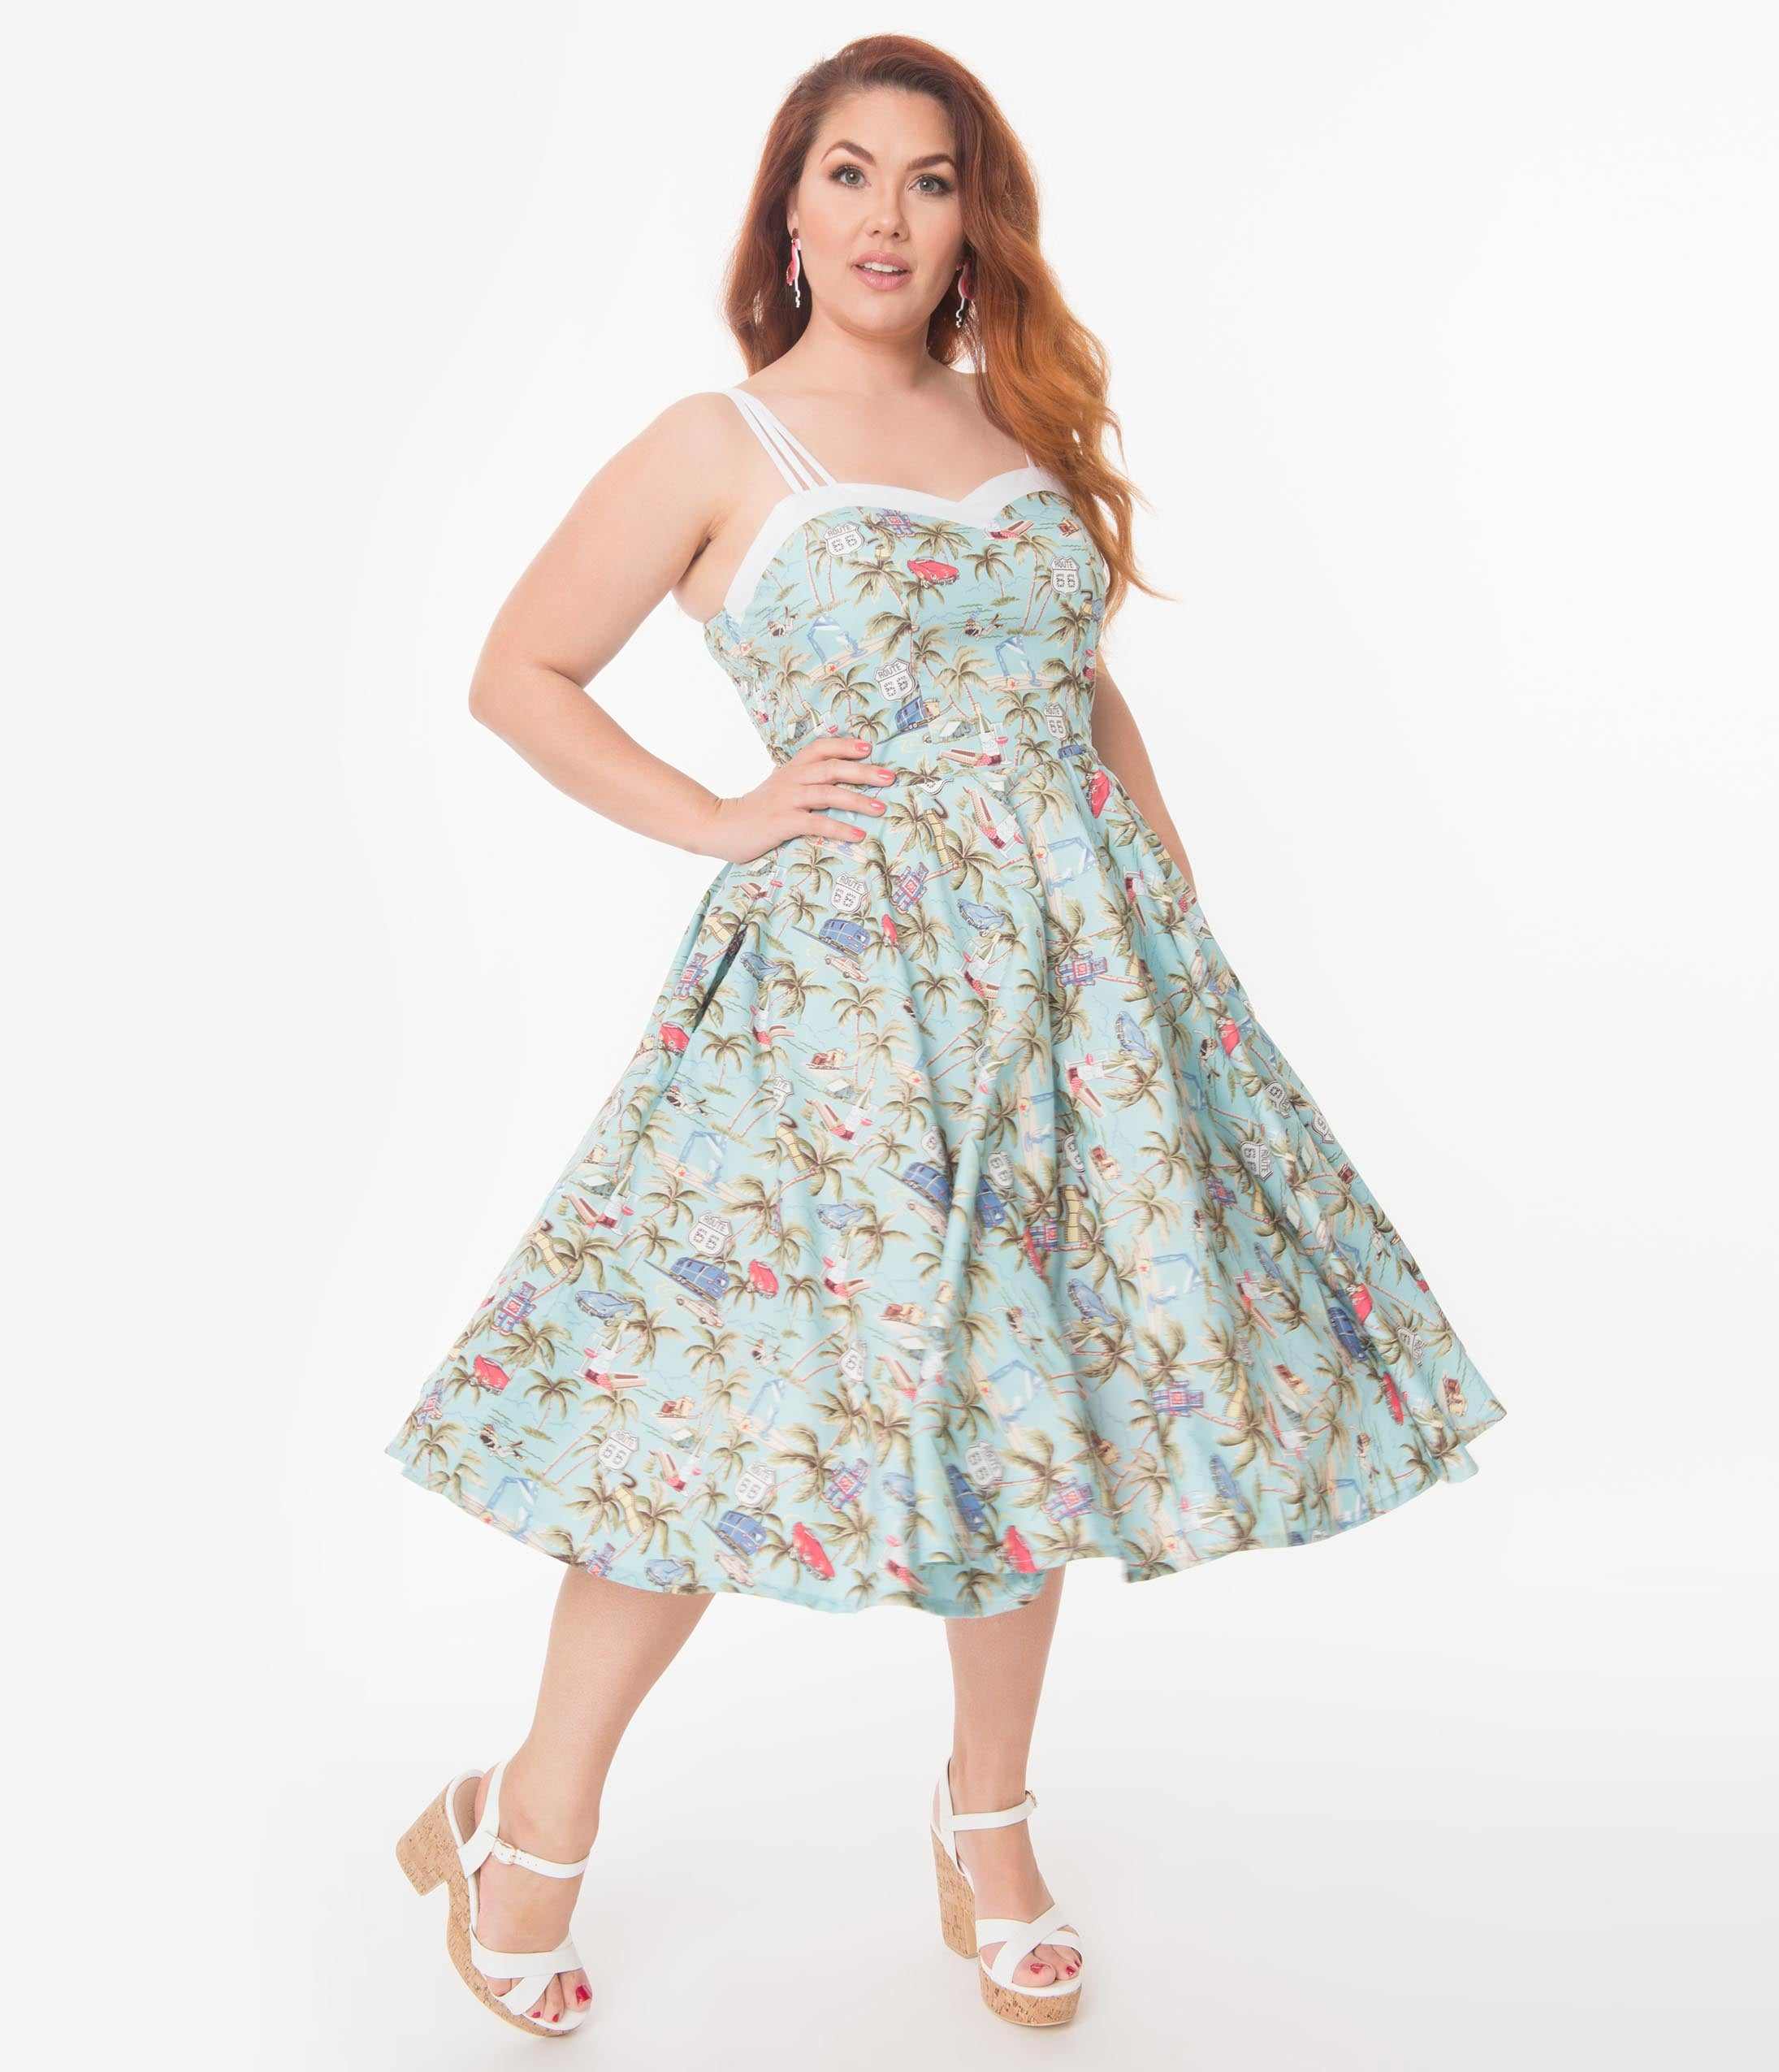 1950s Plus Size Dresses, Swing Dresses Plus Size 1950S Light Blue  Retro Tropical Print Candy Swing Dress $98.00 AT vintagedancer.com